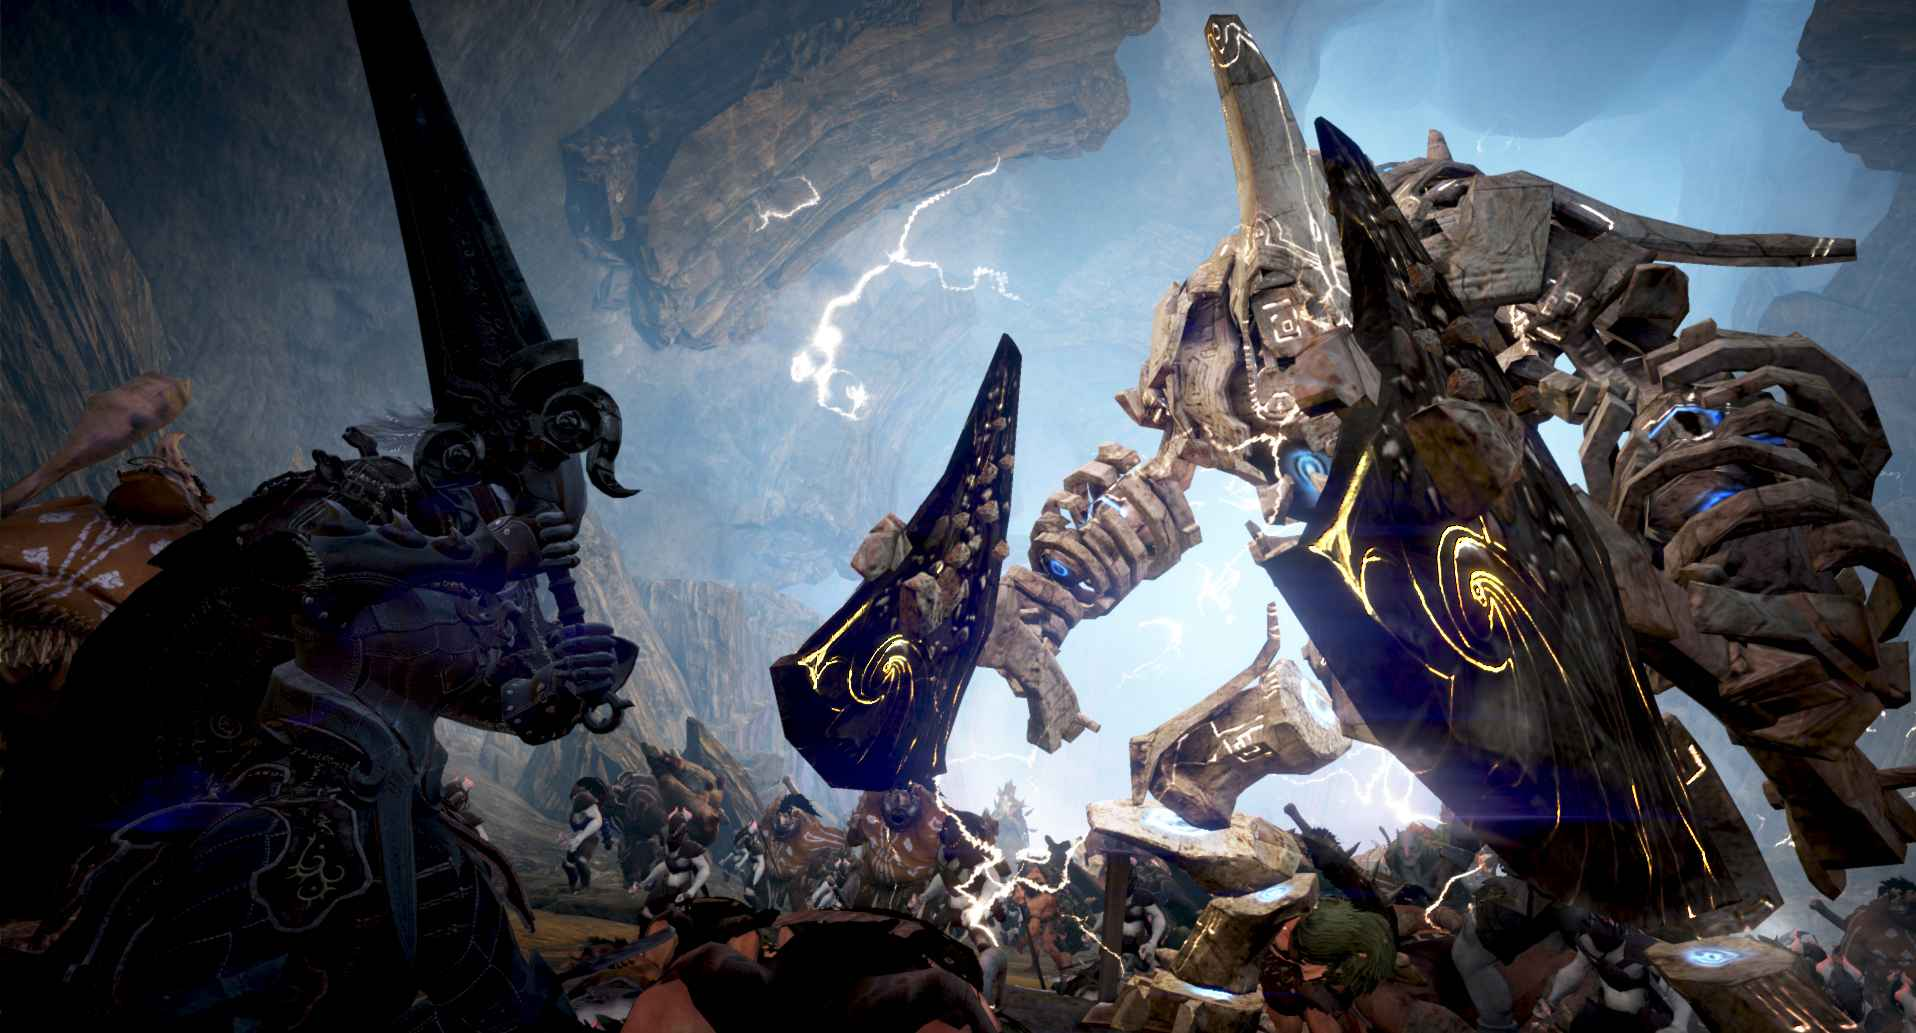 Black Desert Online PS4 Release Date Coming 'As Soon As